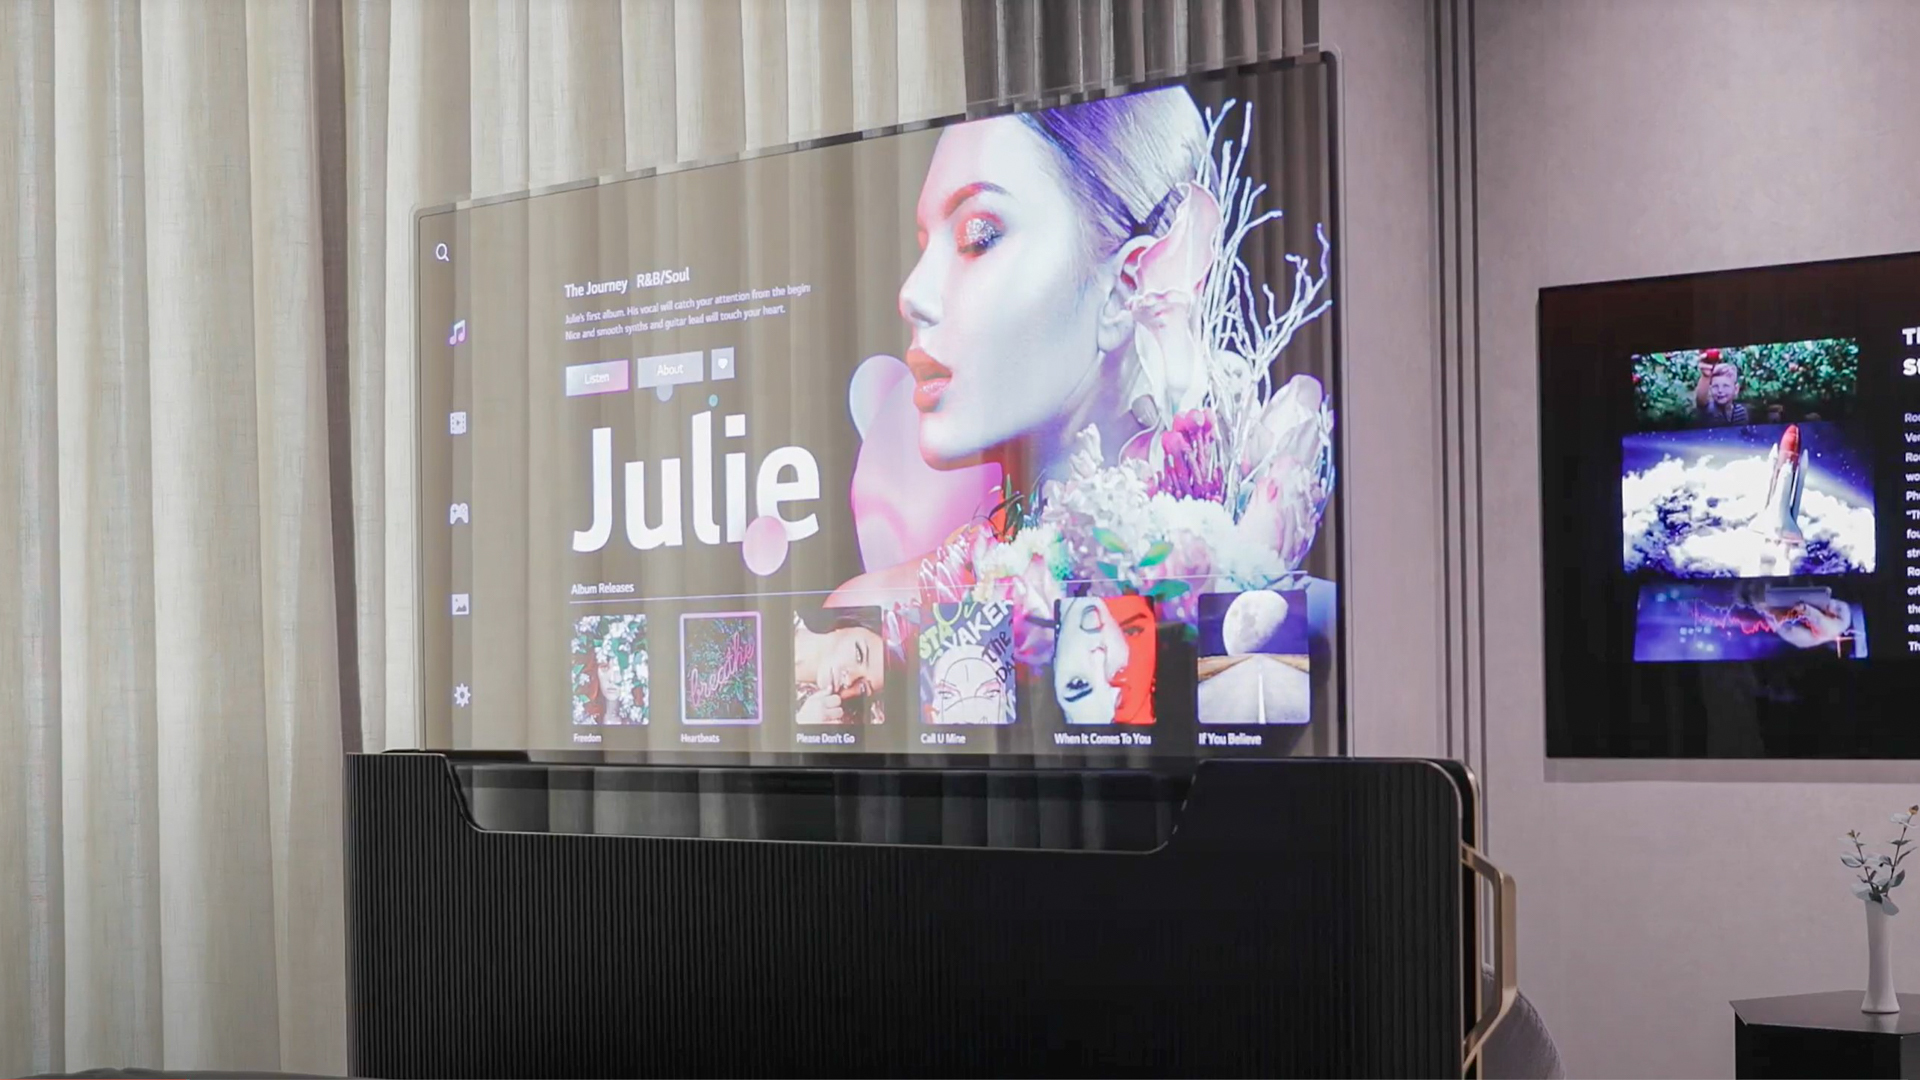 CES 2021: LG unveils bed with built-in transparent TV